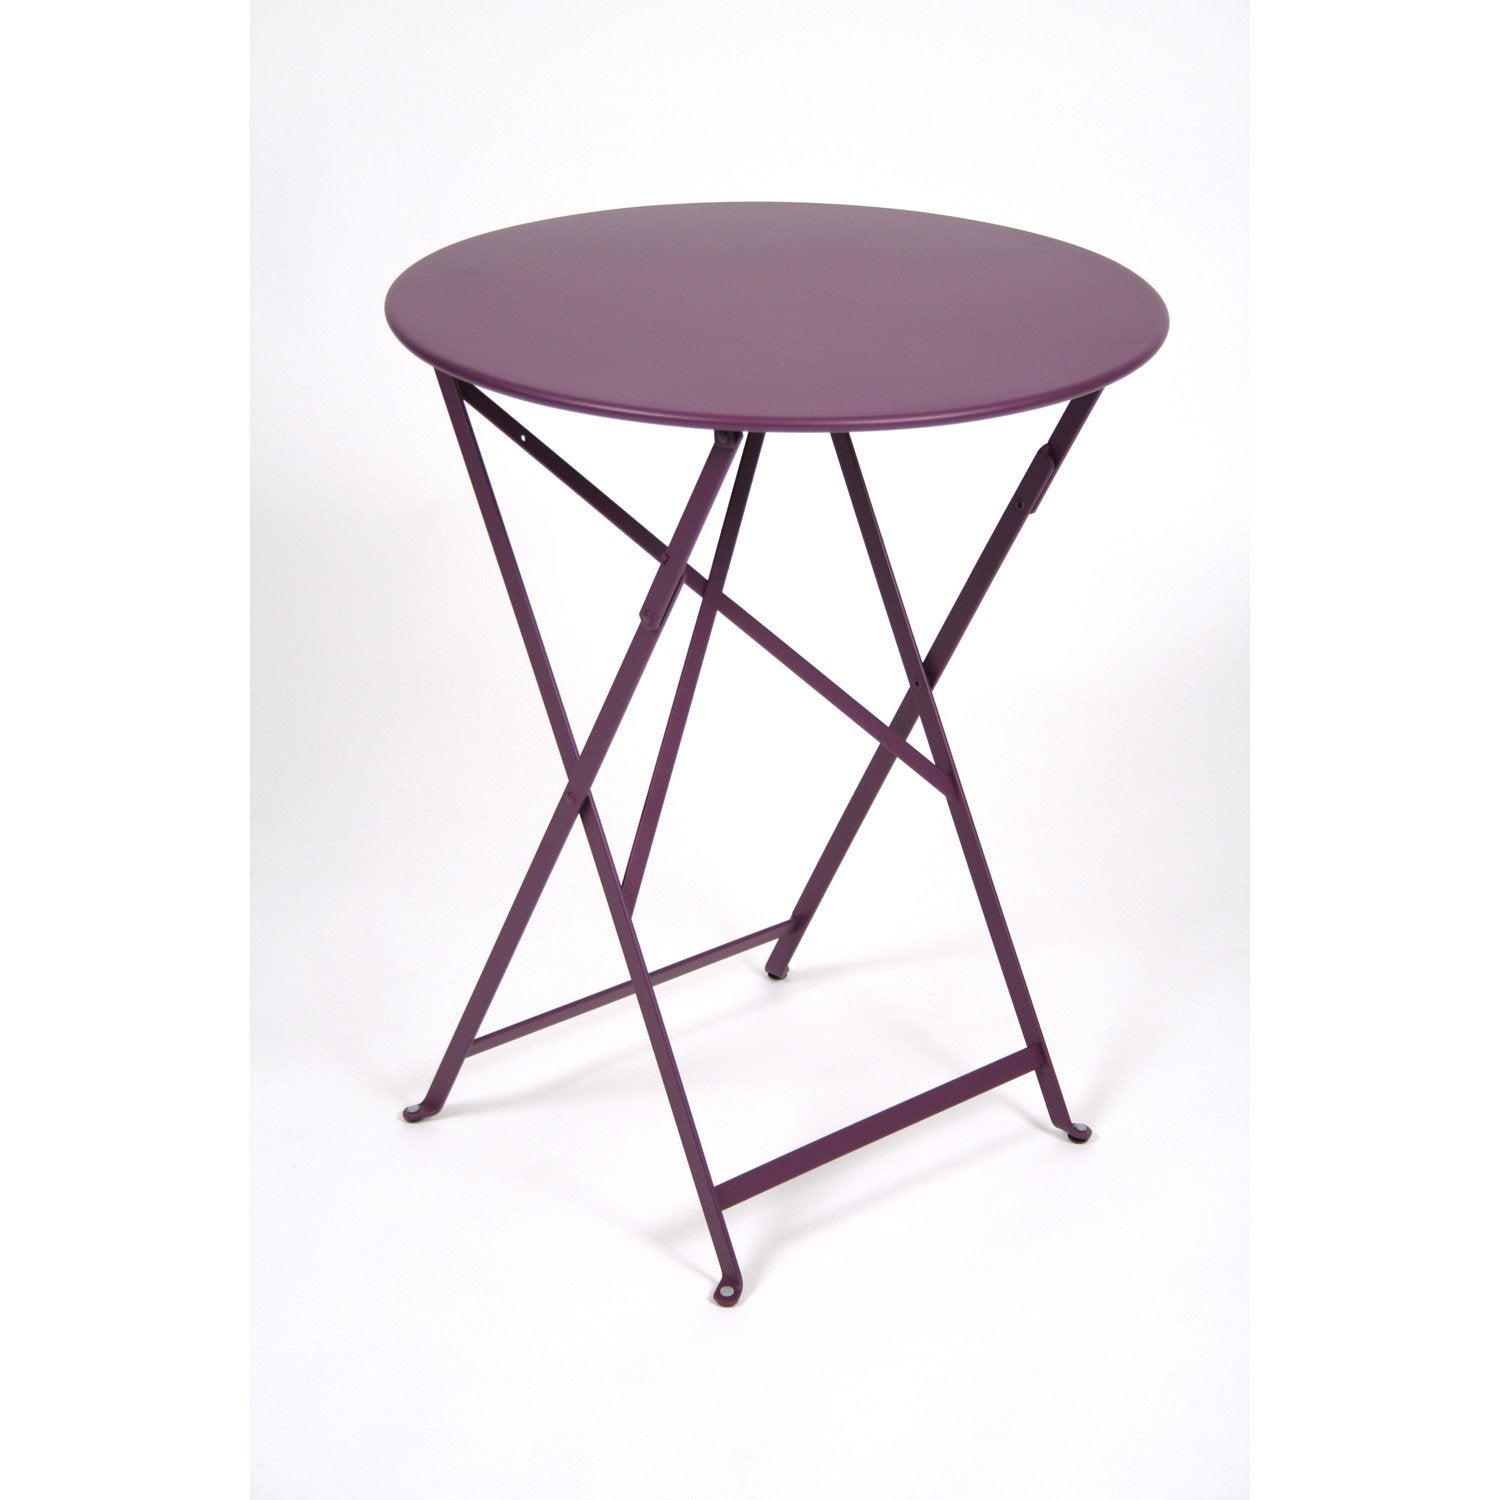 Table de jardin ronde bistro fermob leroy merlin for Petite table de cuisine ronde